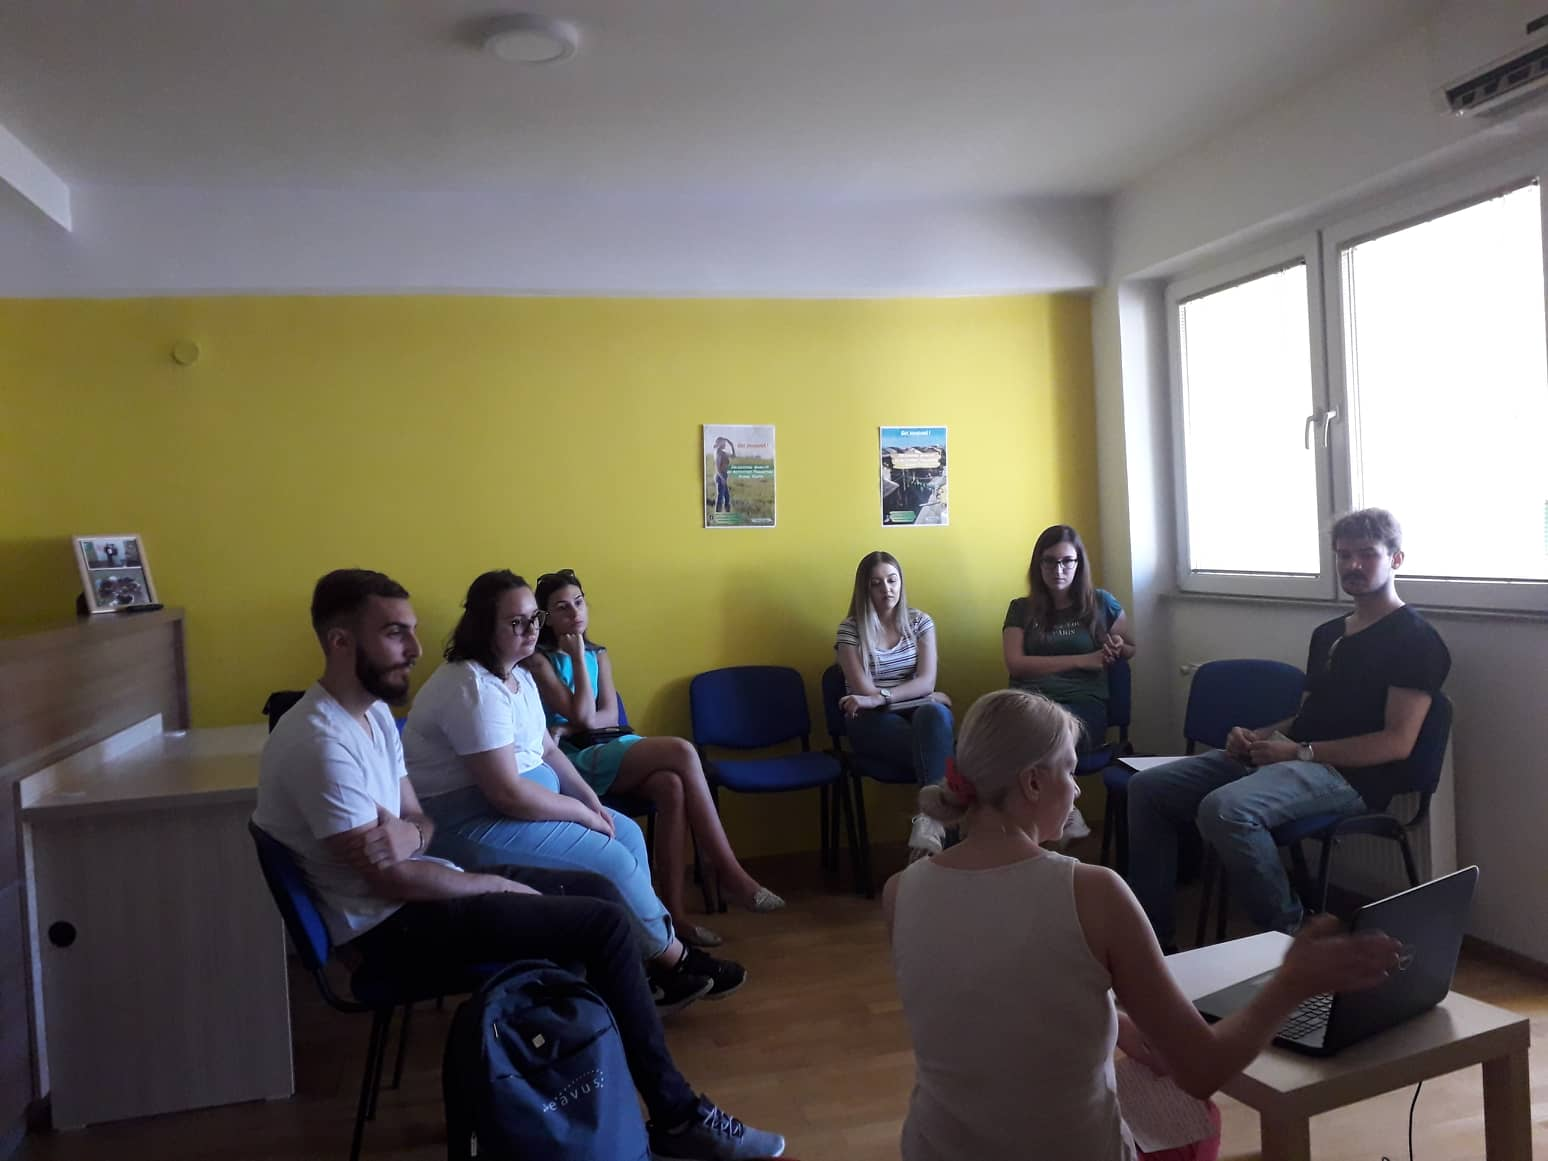 Youth Council Next Generation – Capacity Building Activity 5 – Use Social Media In A Positive Way